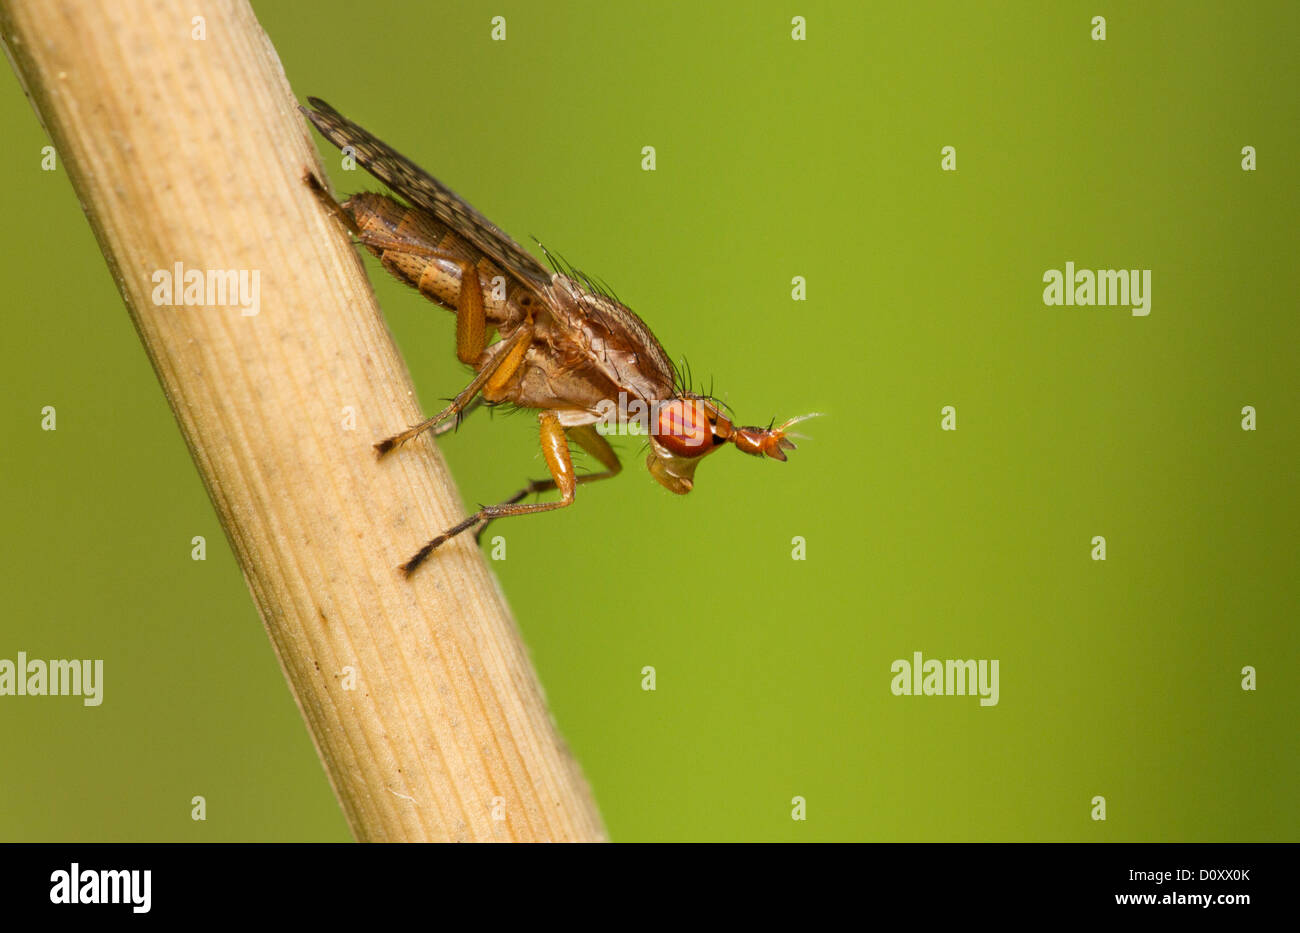 Deer fly isolated on a green background. Stock Photo